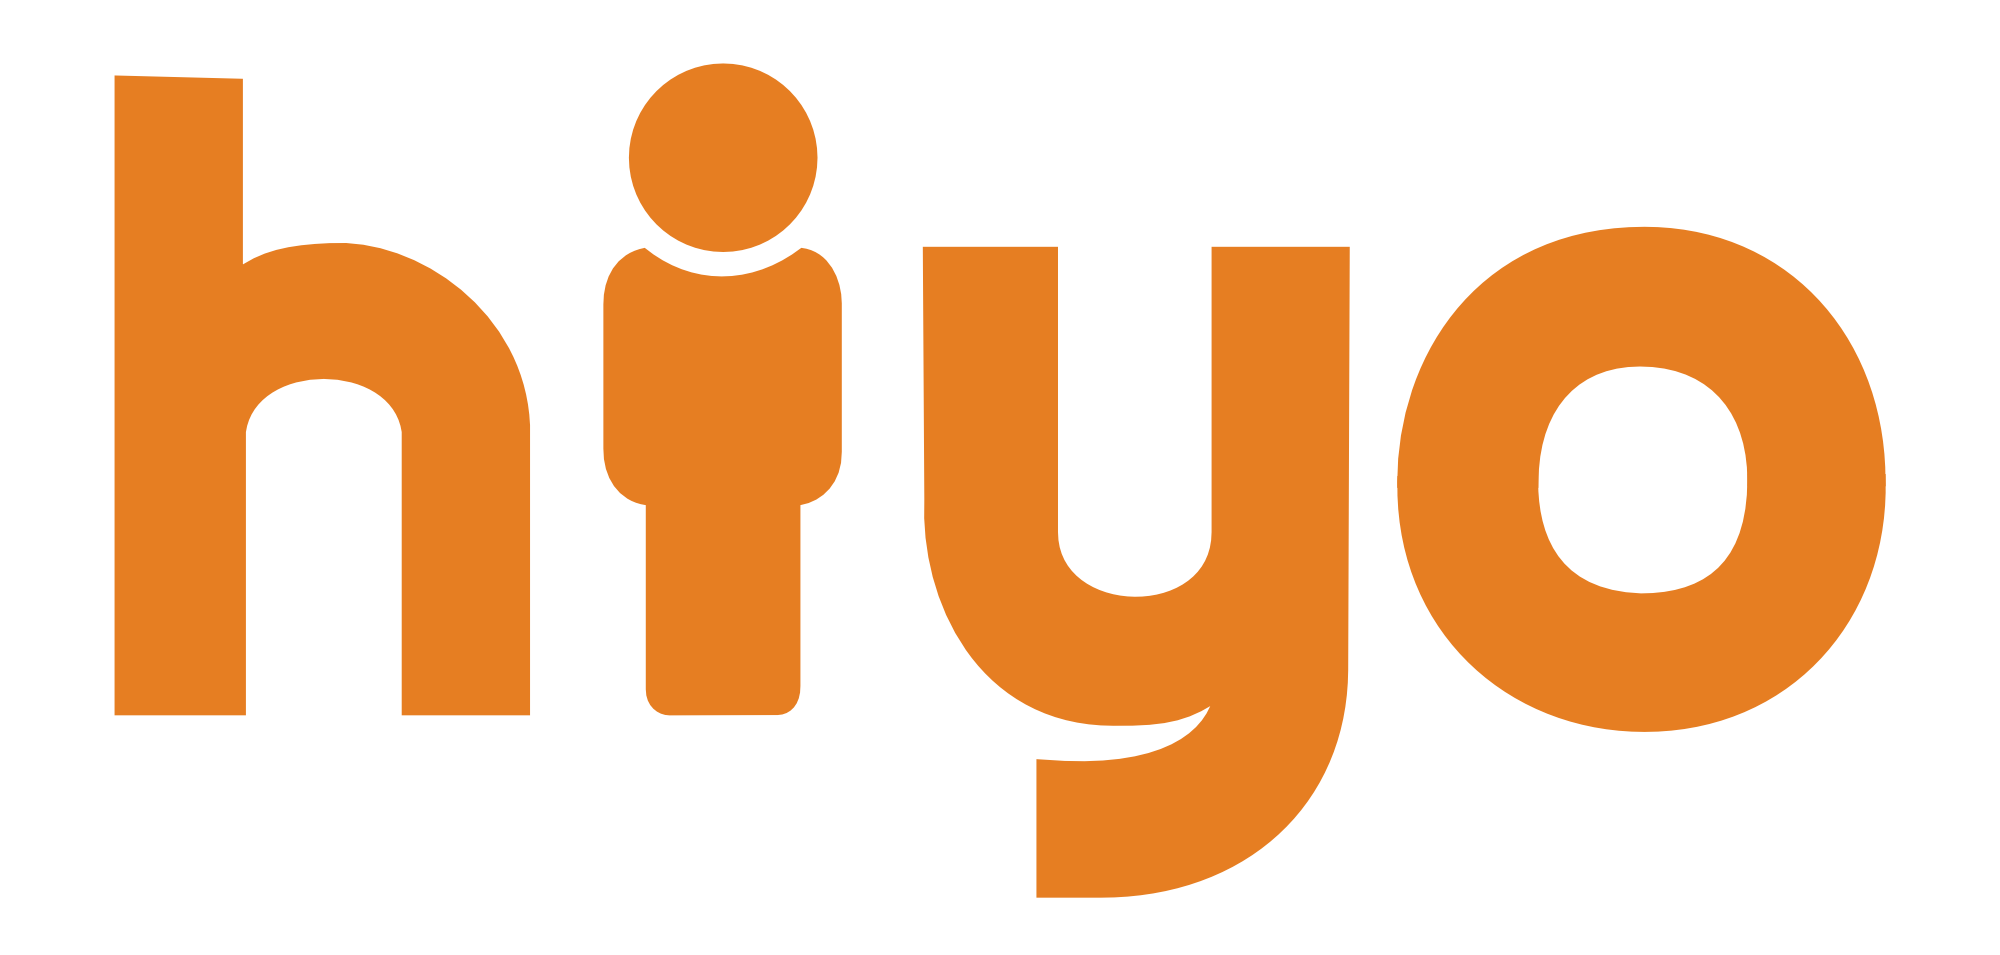 Hiyo: Therapeutic Disruption via An Anonymous Mobile Counseling Community